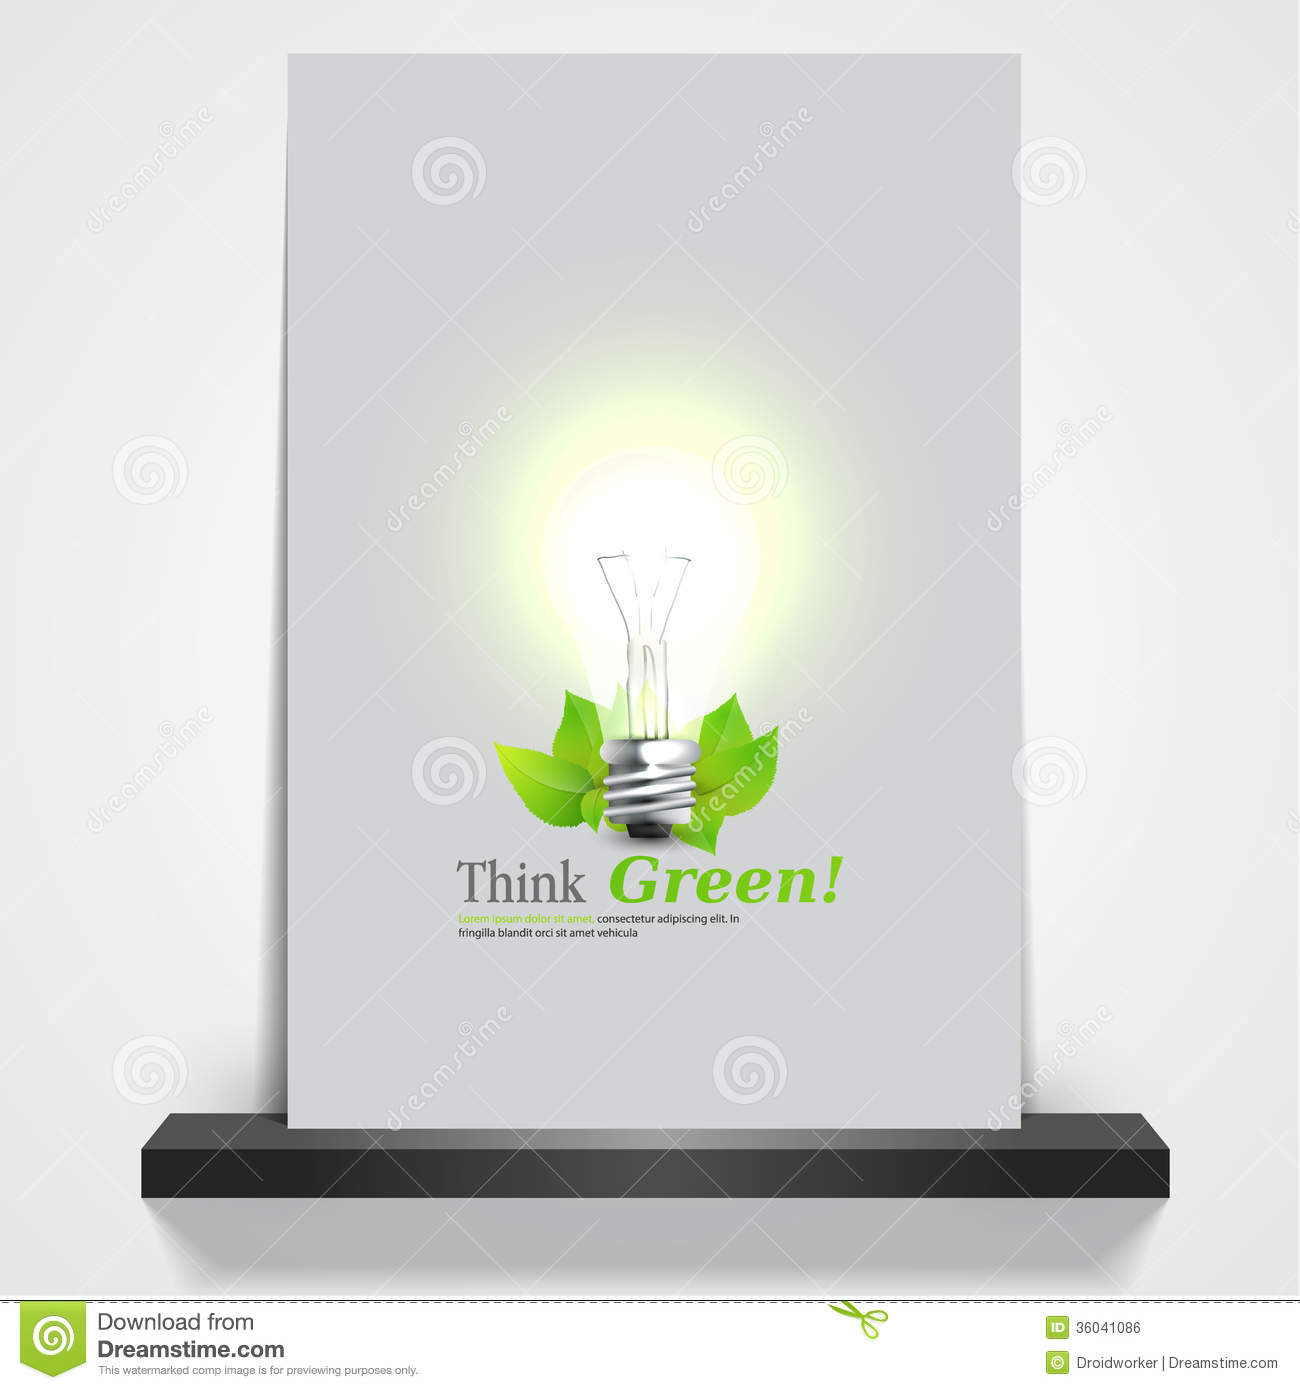 printable green eco magazine or flyer cover d light bulb printable green eco magazine or flyer cover 3d light bulb illustration